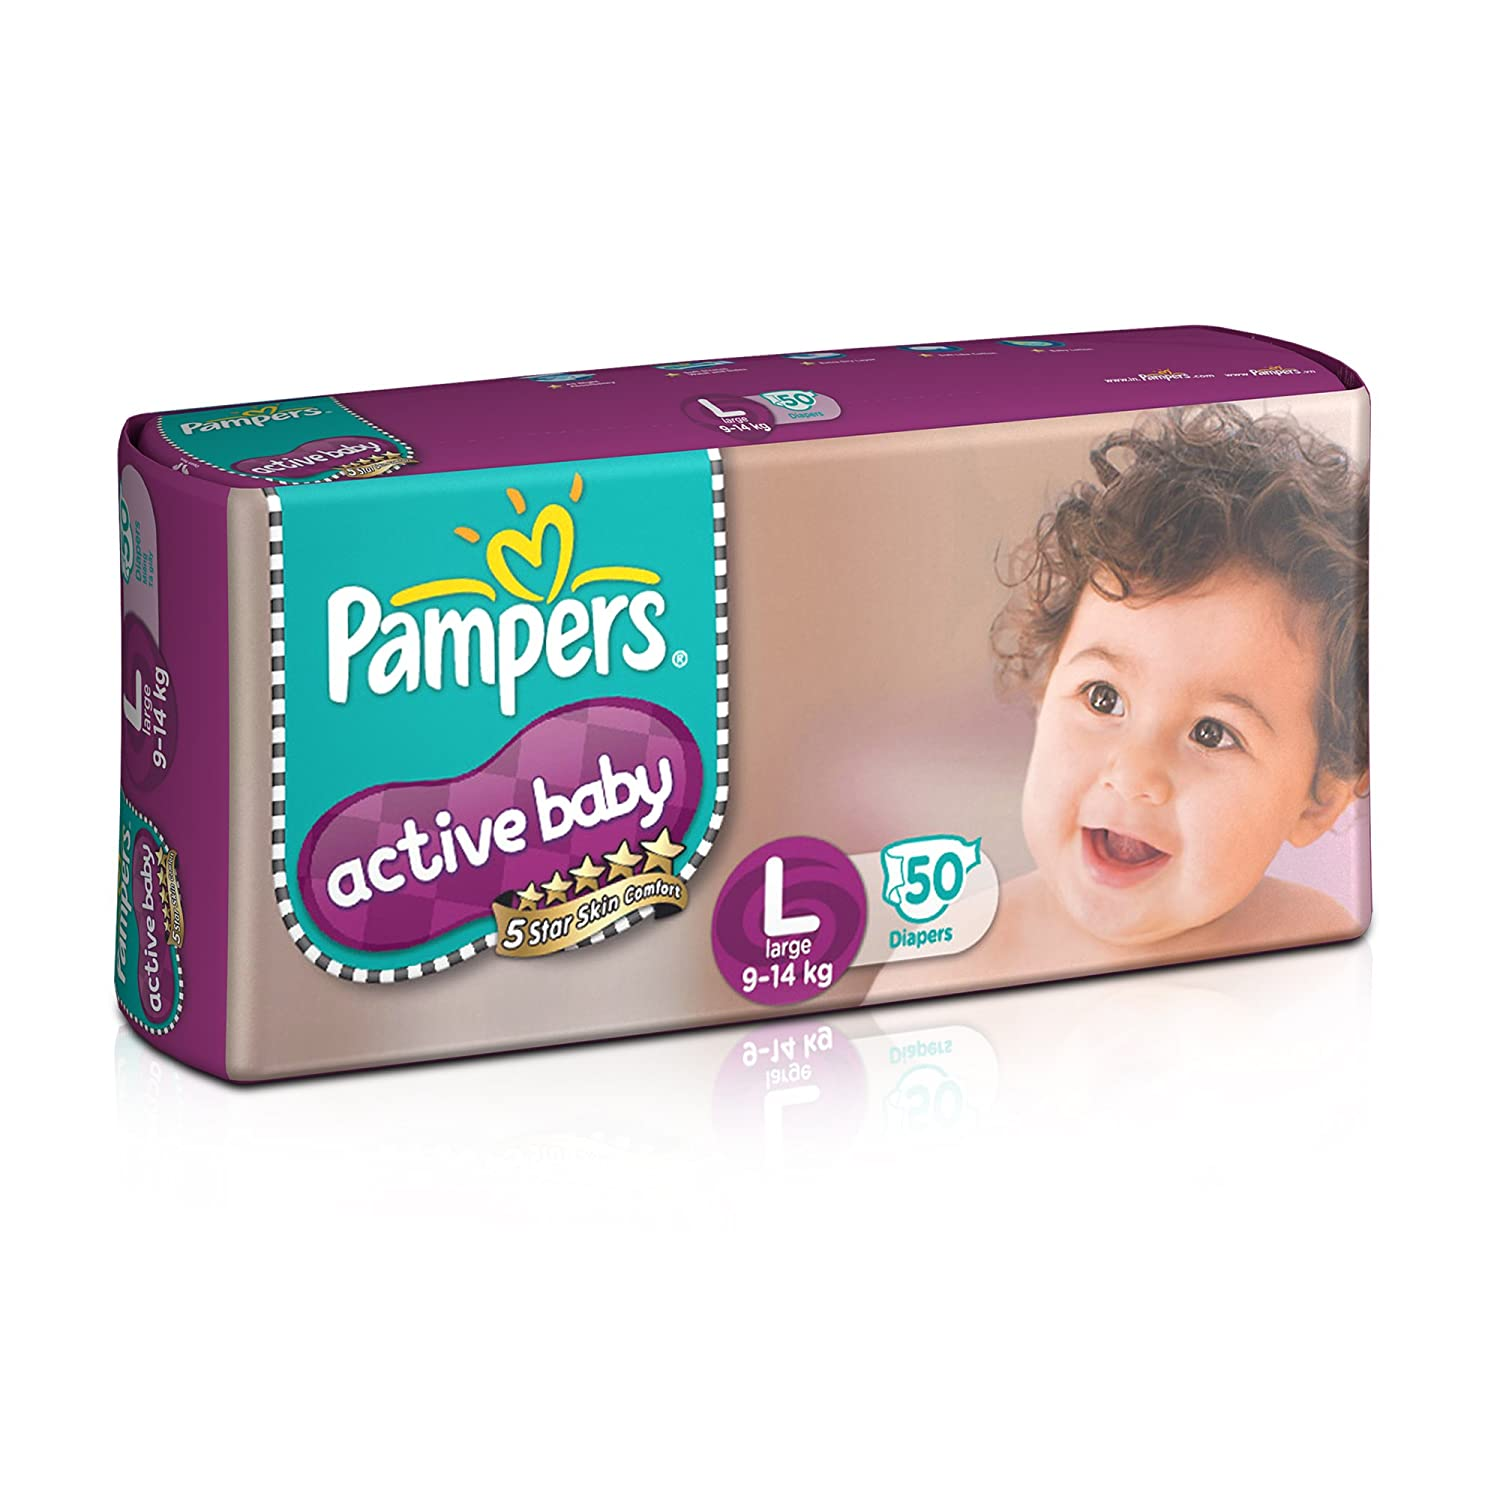 Buy Pampers Active Baby Large Size Diaper 50 Count Online At Low Premium Care Tape Nb 52 Prices In India